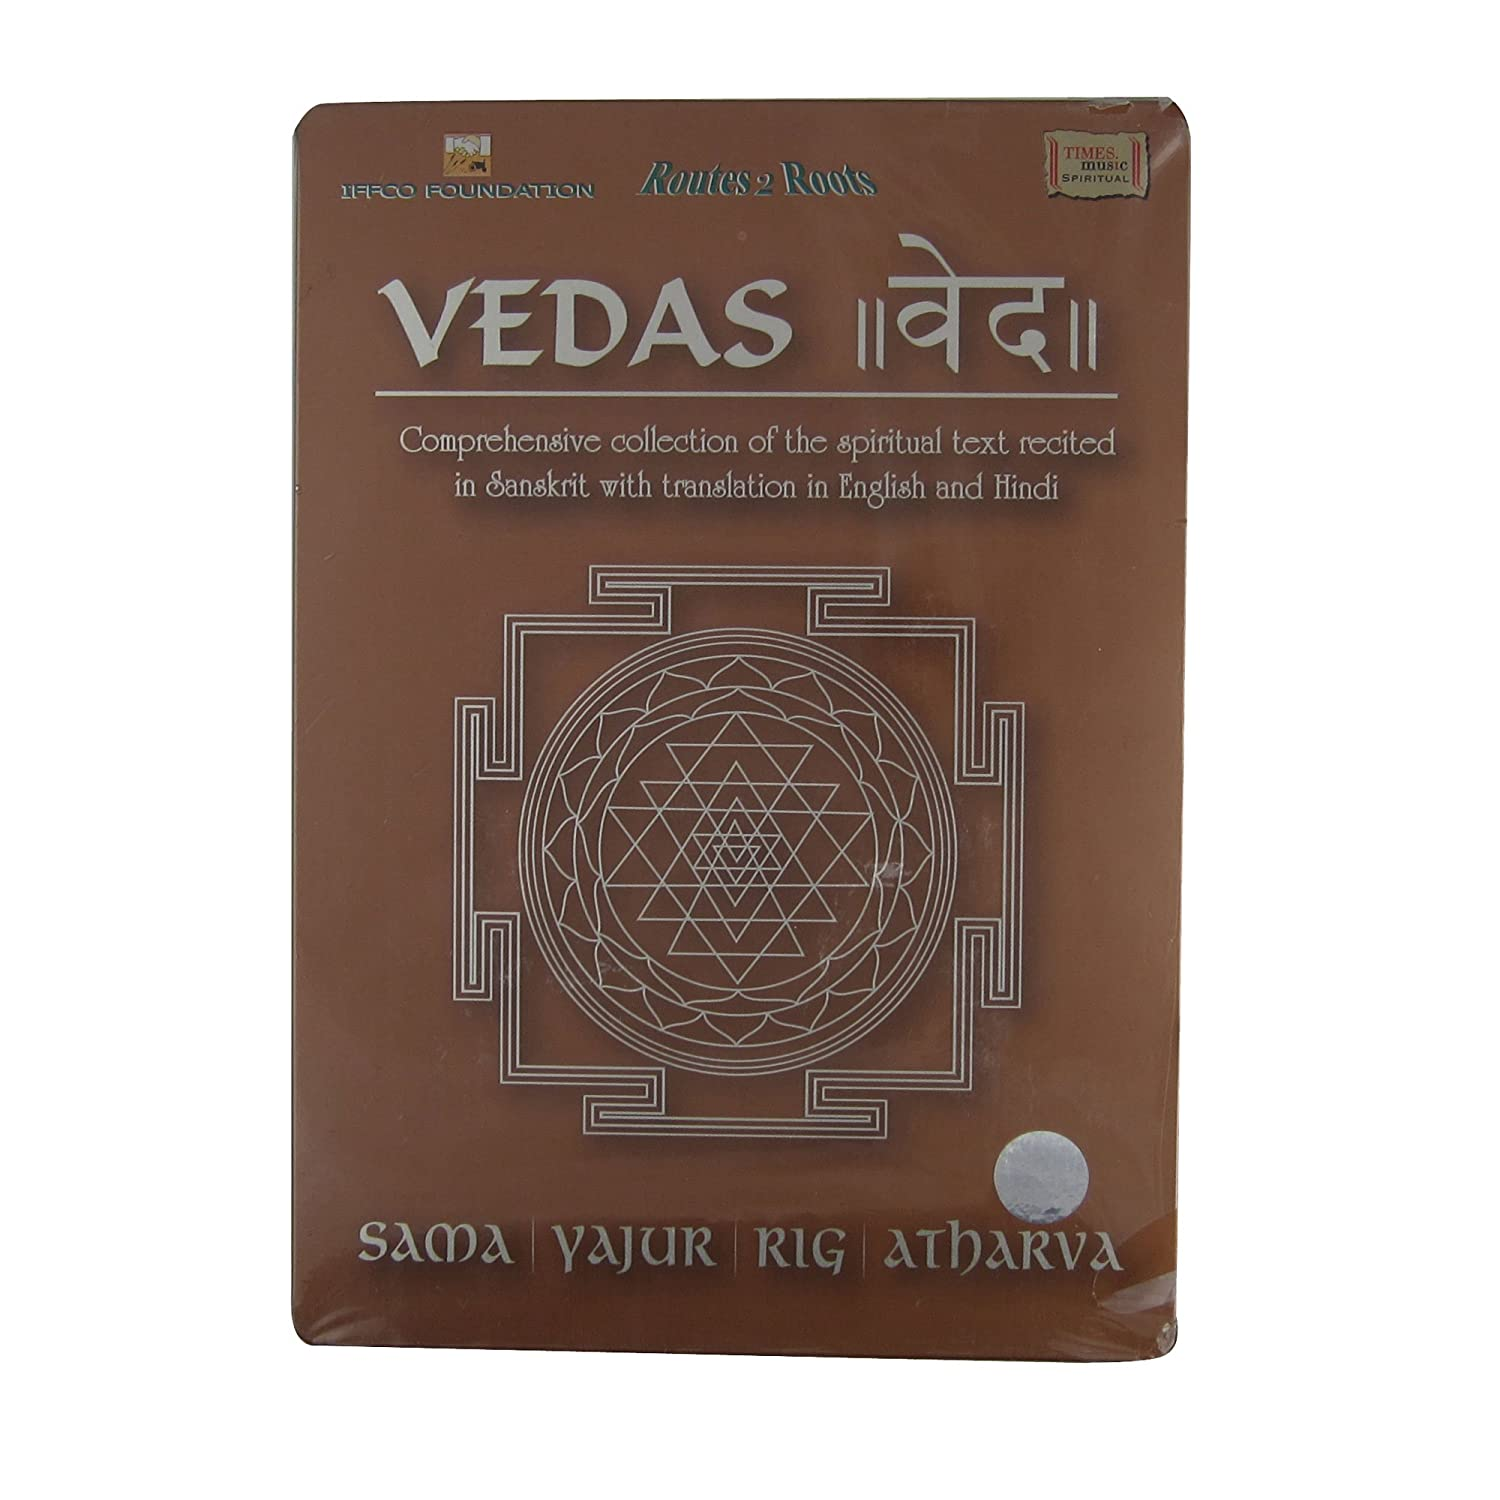 Slavic and Indian Vedas: sacred knowledge 41